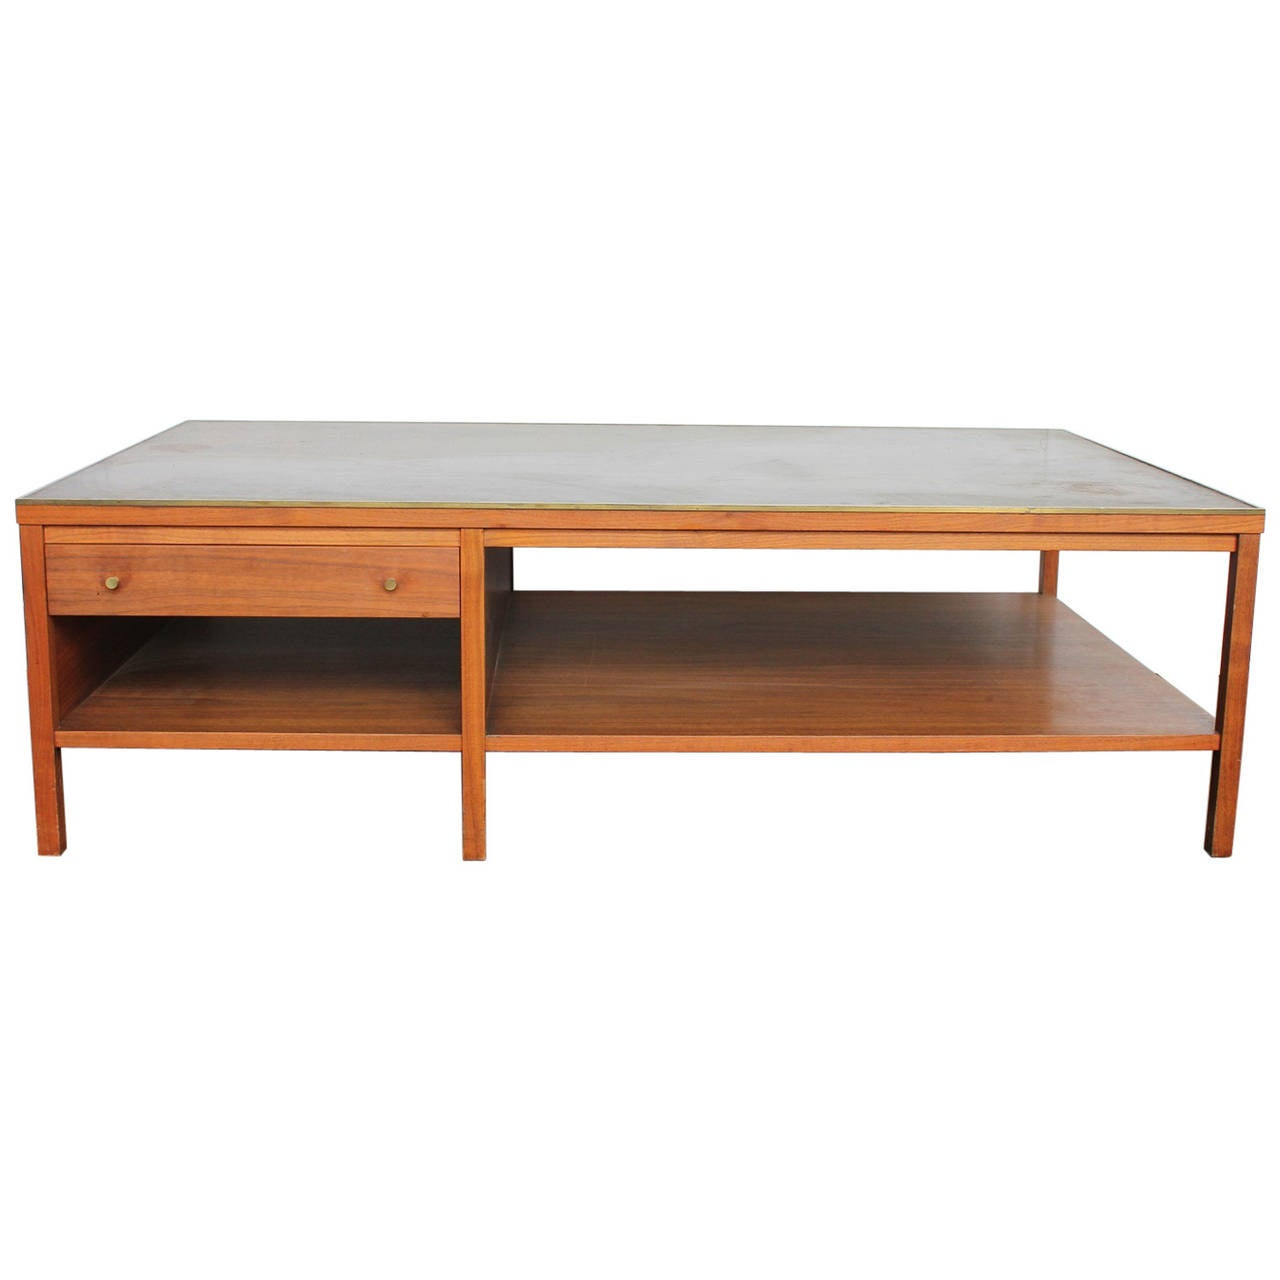 Leather Top Coffee Table By Paul Mccobb For Calvin Group For Sale At 1stdibs